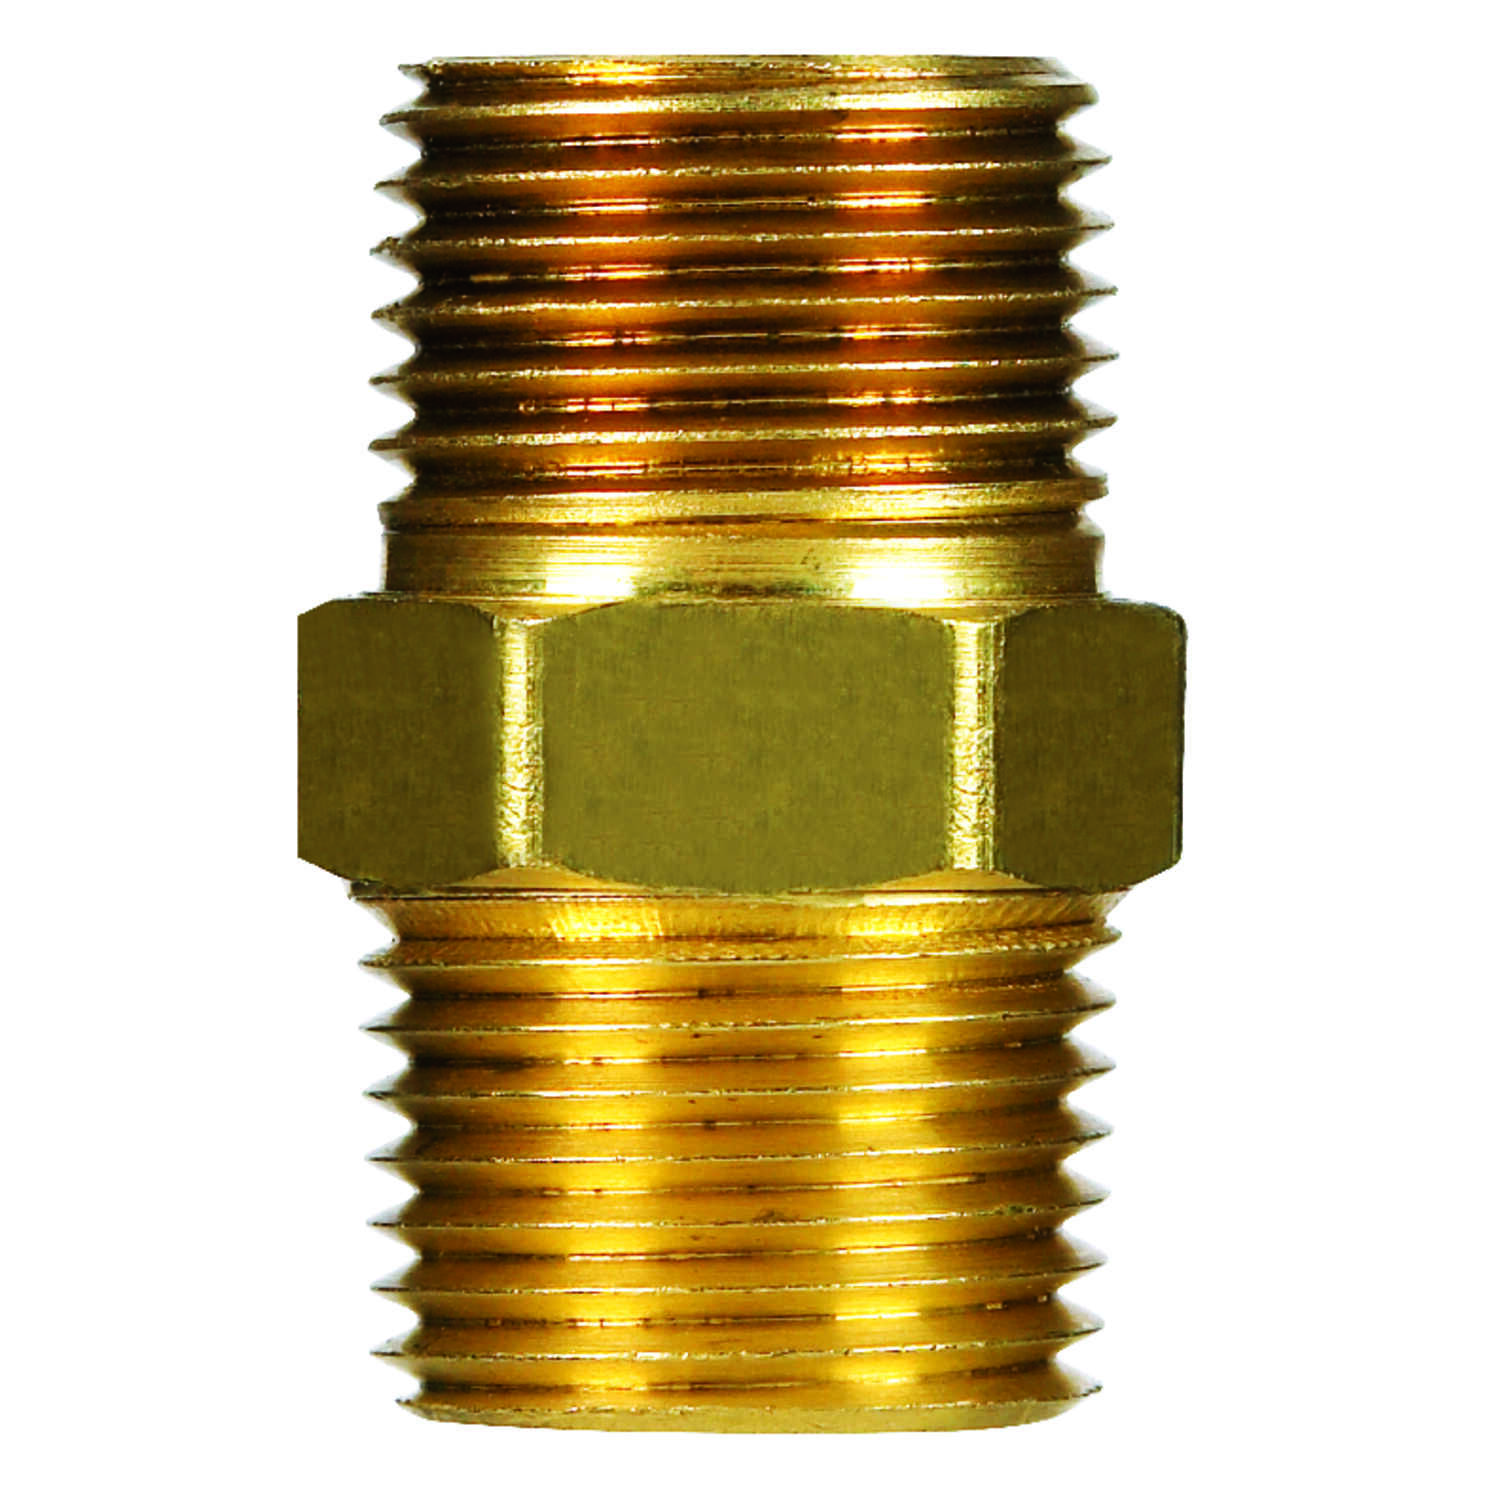 Ace 6 in.  1/8 in. Dia. x 1/8 in. Dia. MPT To MPT  Brass  Hex Pipe Nipple